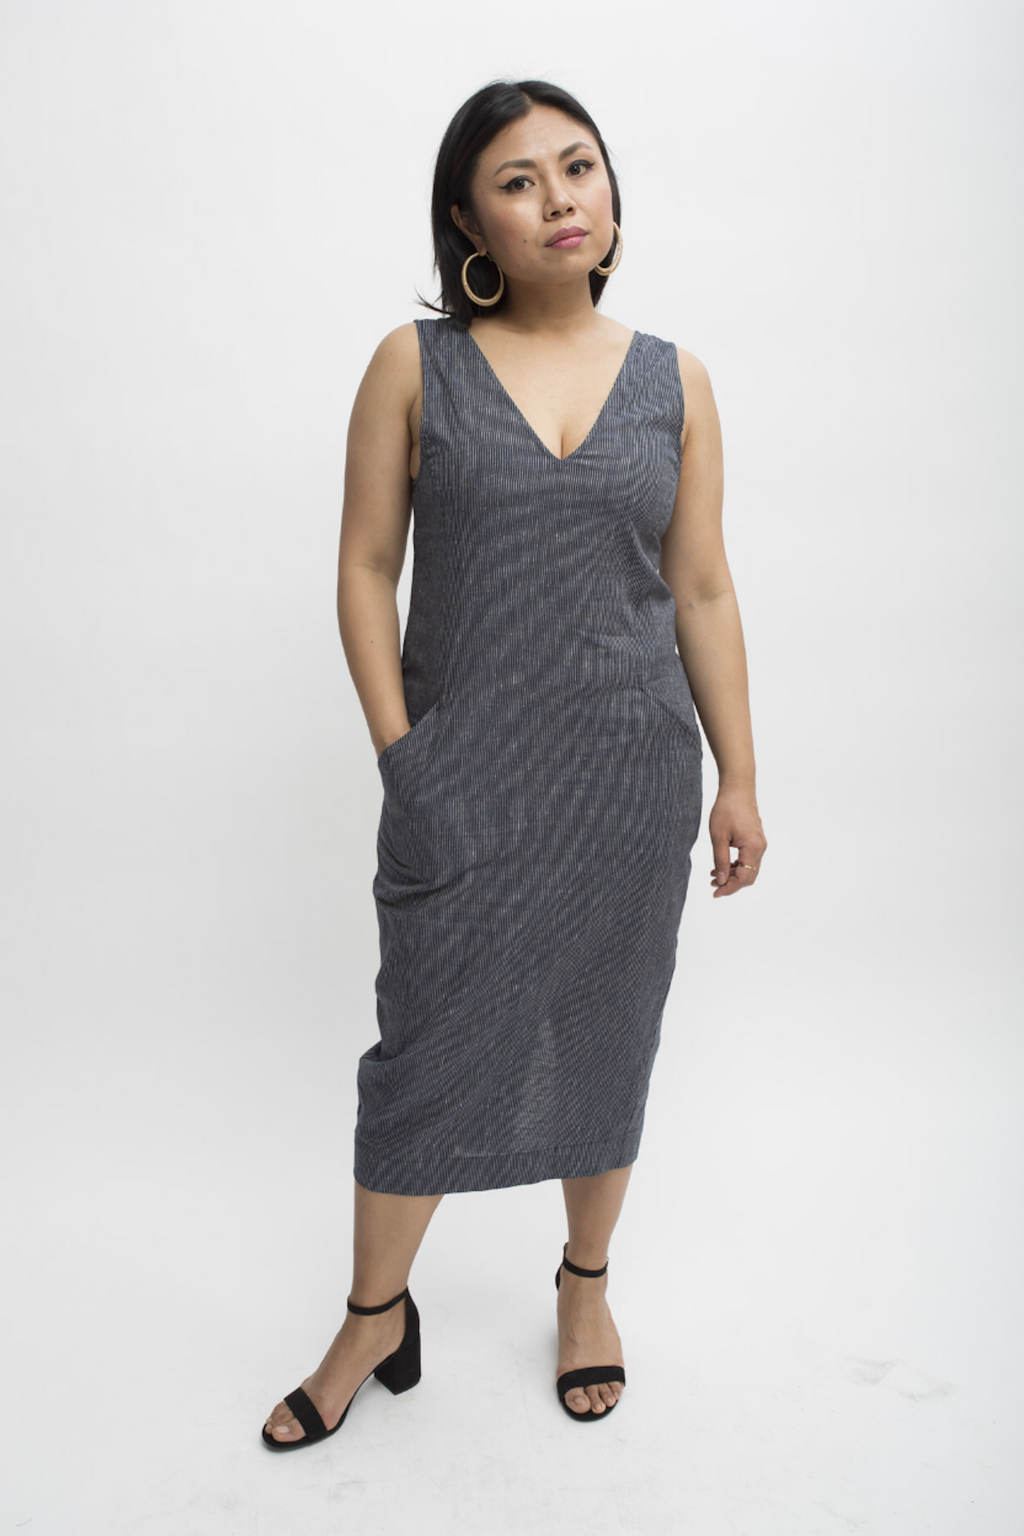 Java Dress - Hemp/Organic Cotton